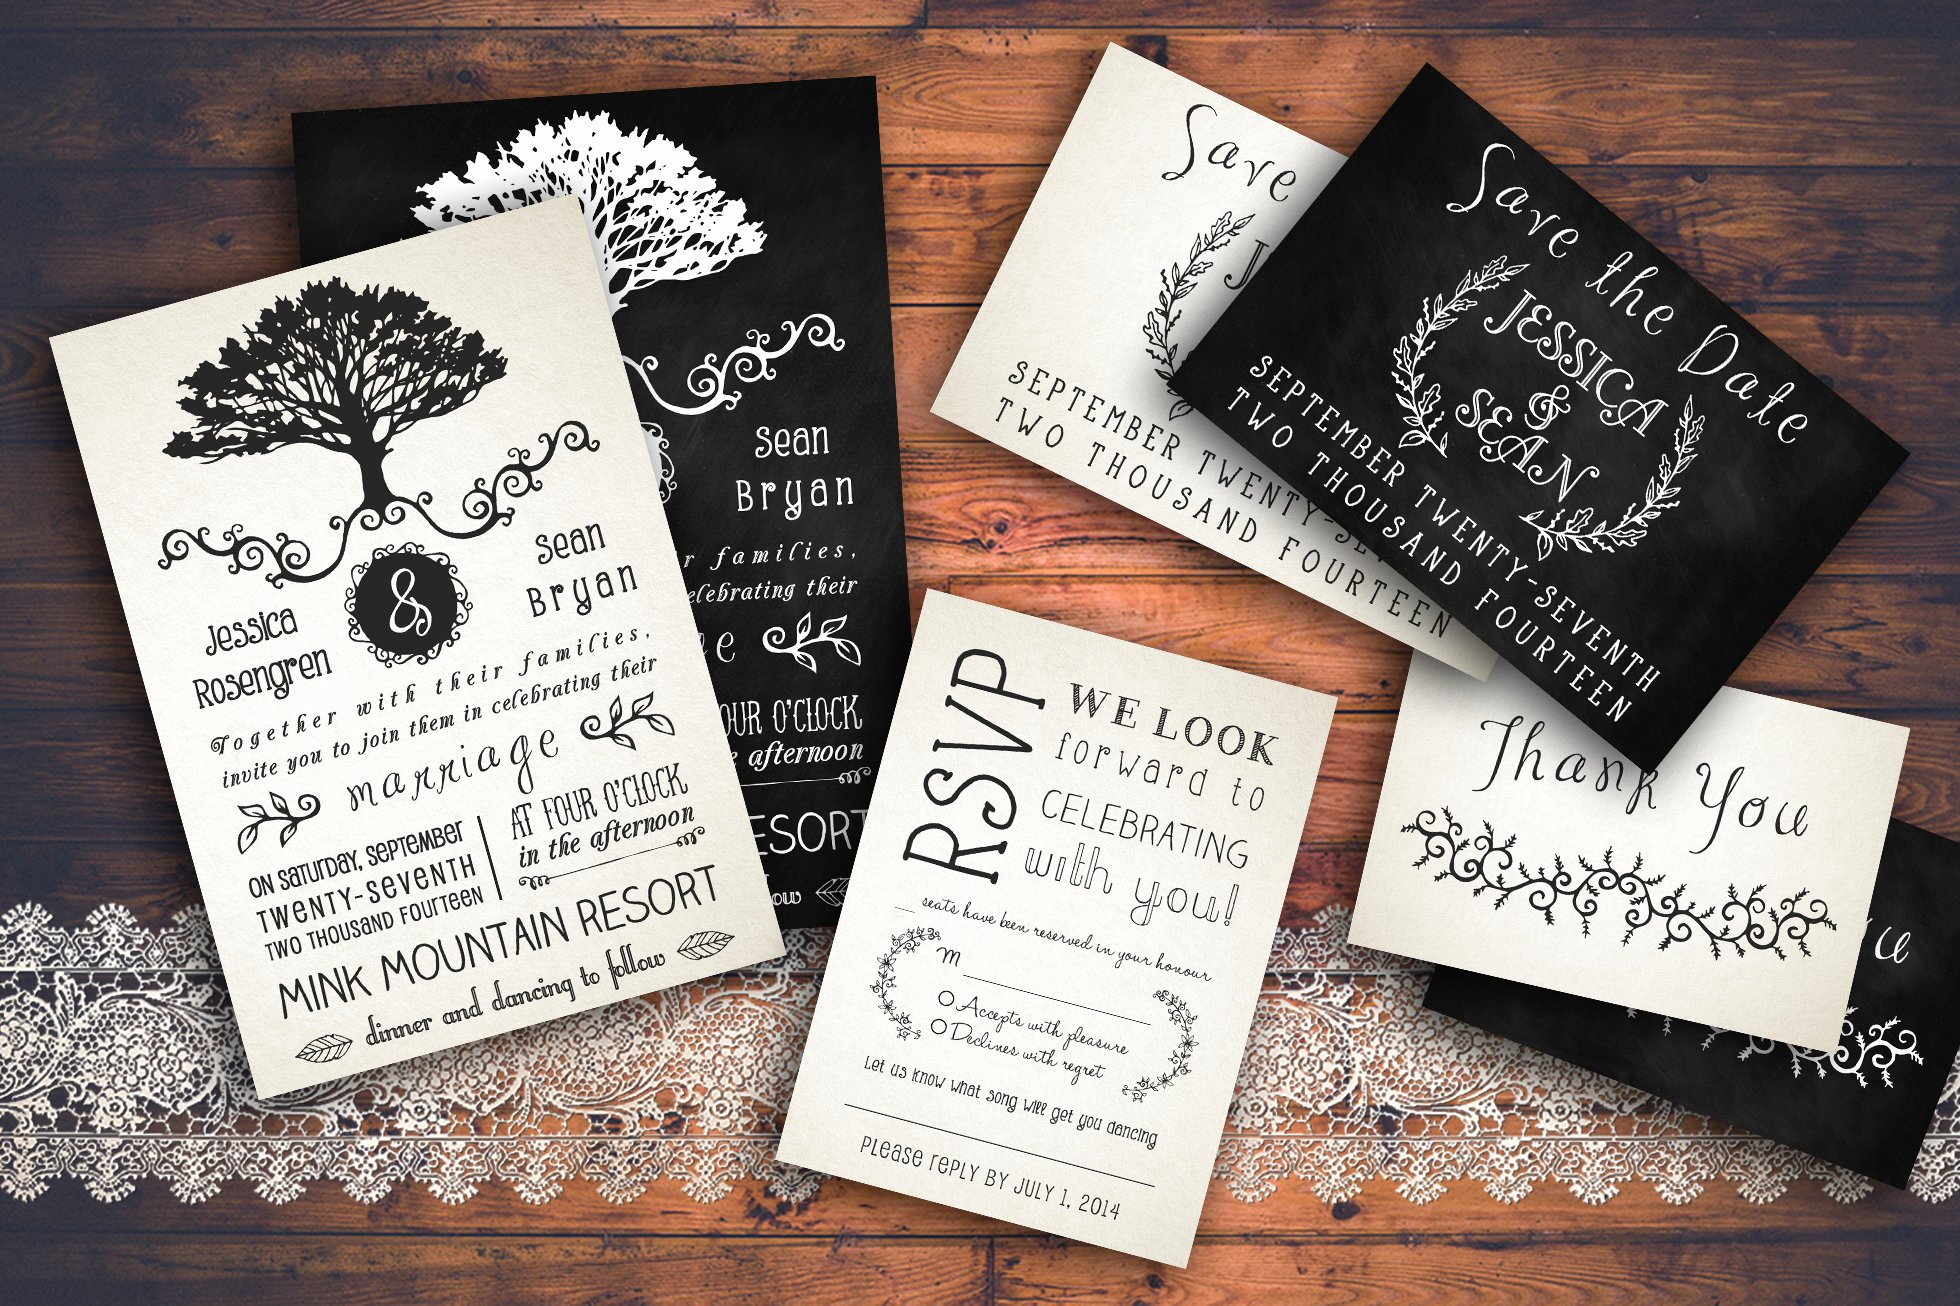 Rustic Wedding Invitation Templates Inspirational Rustic Wedding Invitation Pack Invitation Templates On Creative Market